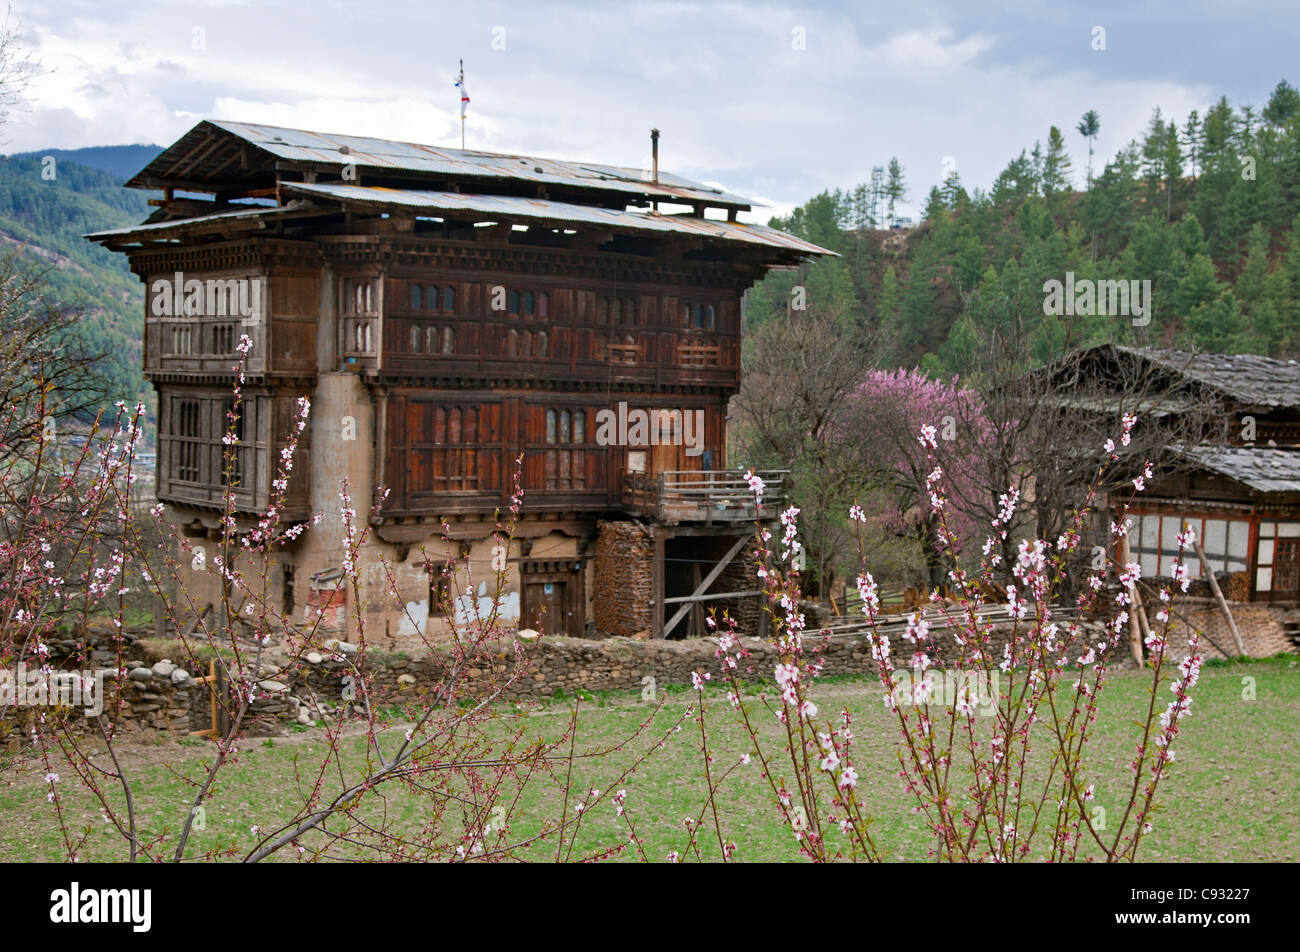 An old farmhouse in traditional Bhutanese architectural style on the outskirts of Jakar. - Stock Image